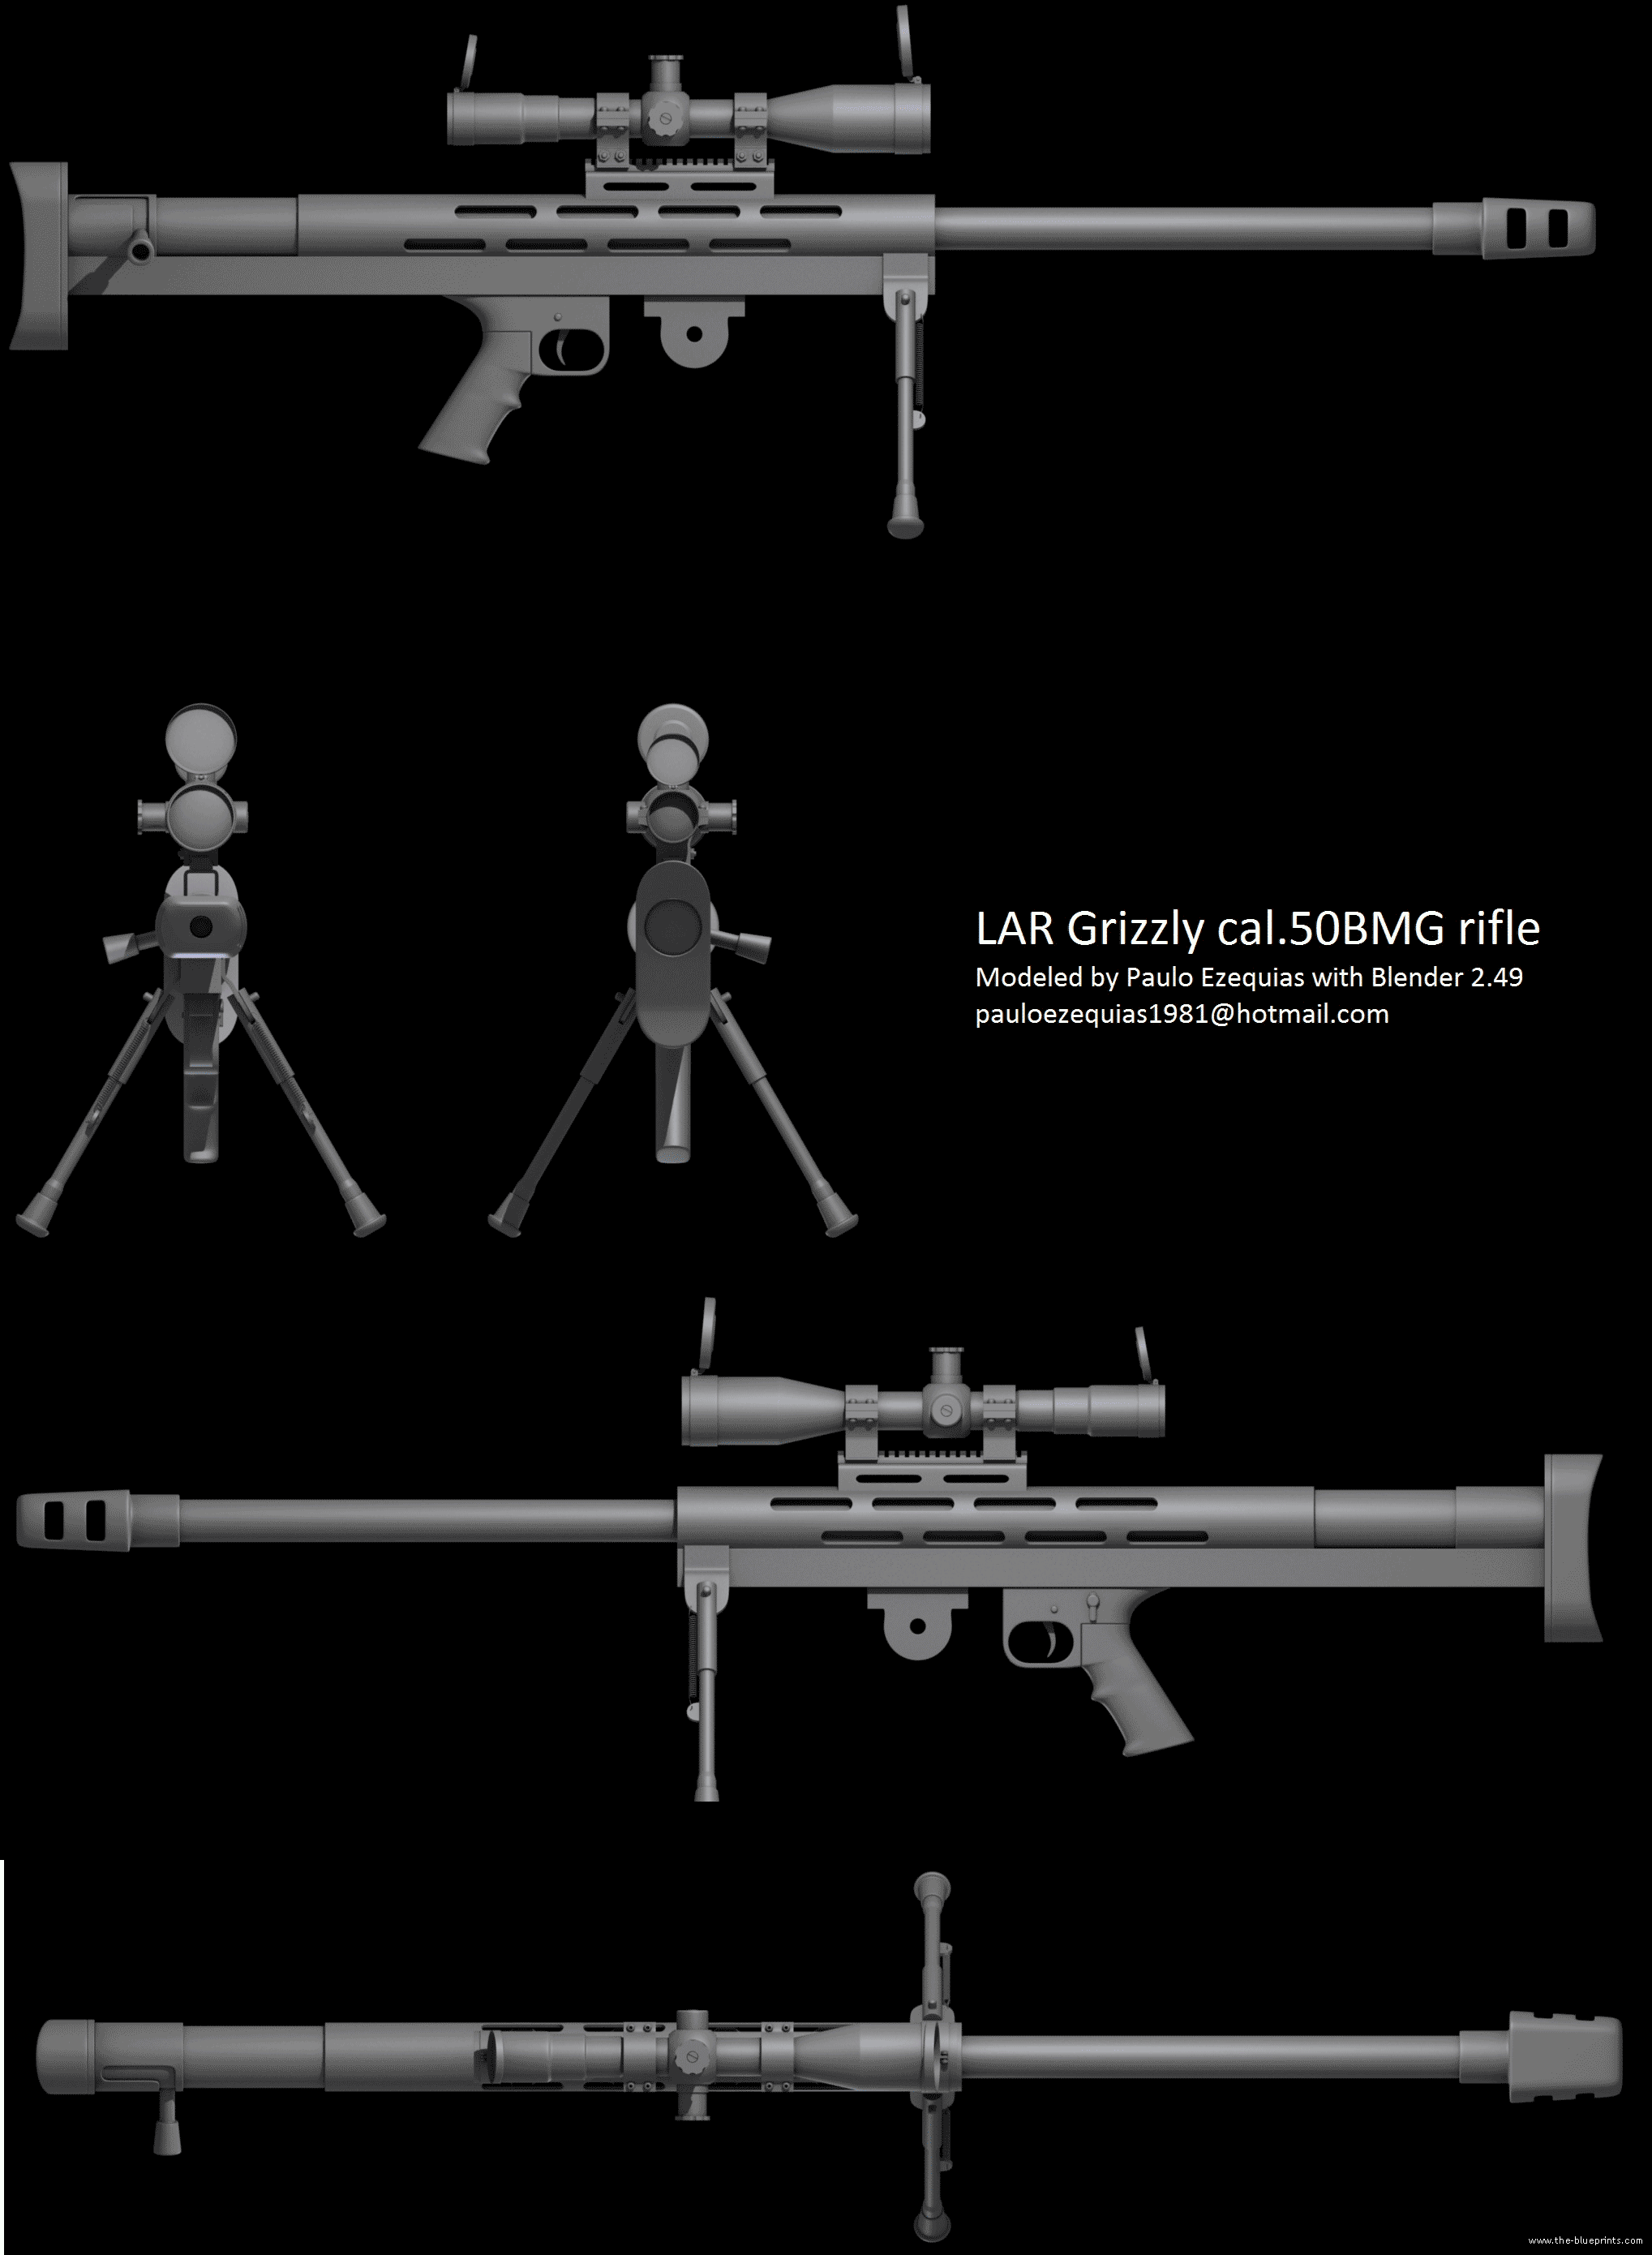 Submit Vat Online >> Blueprints > Weapons > Rifles > LAR Grizzly .50BMG Rifle